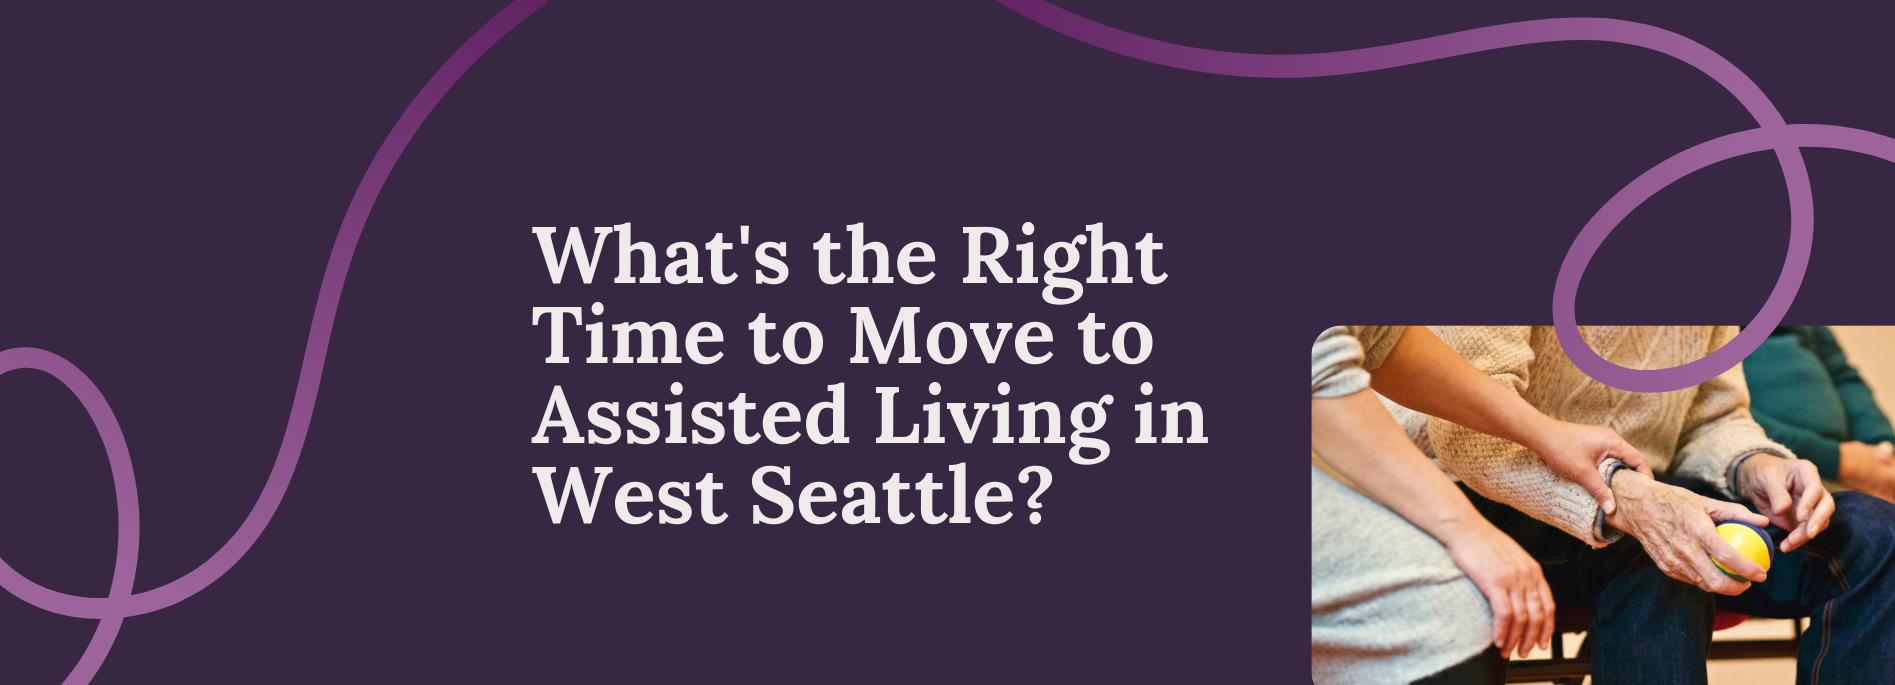 Assisted Living in West Seattle